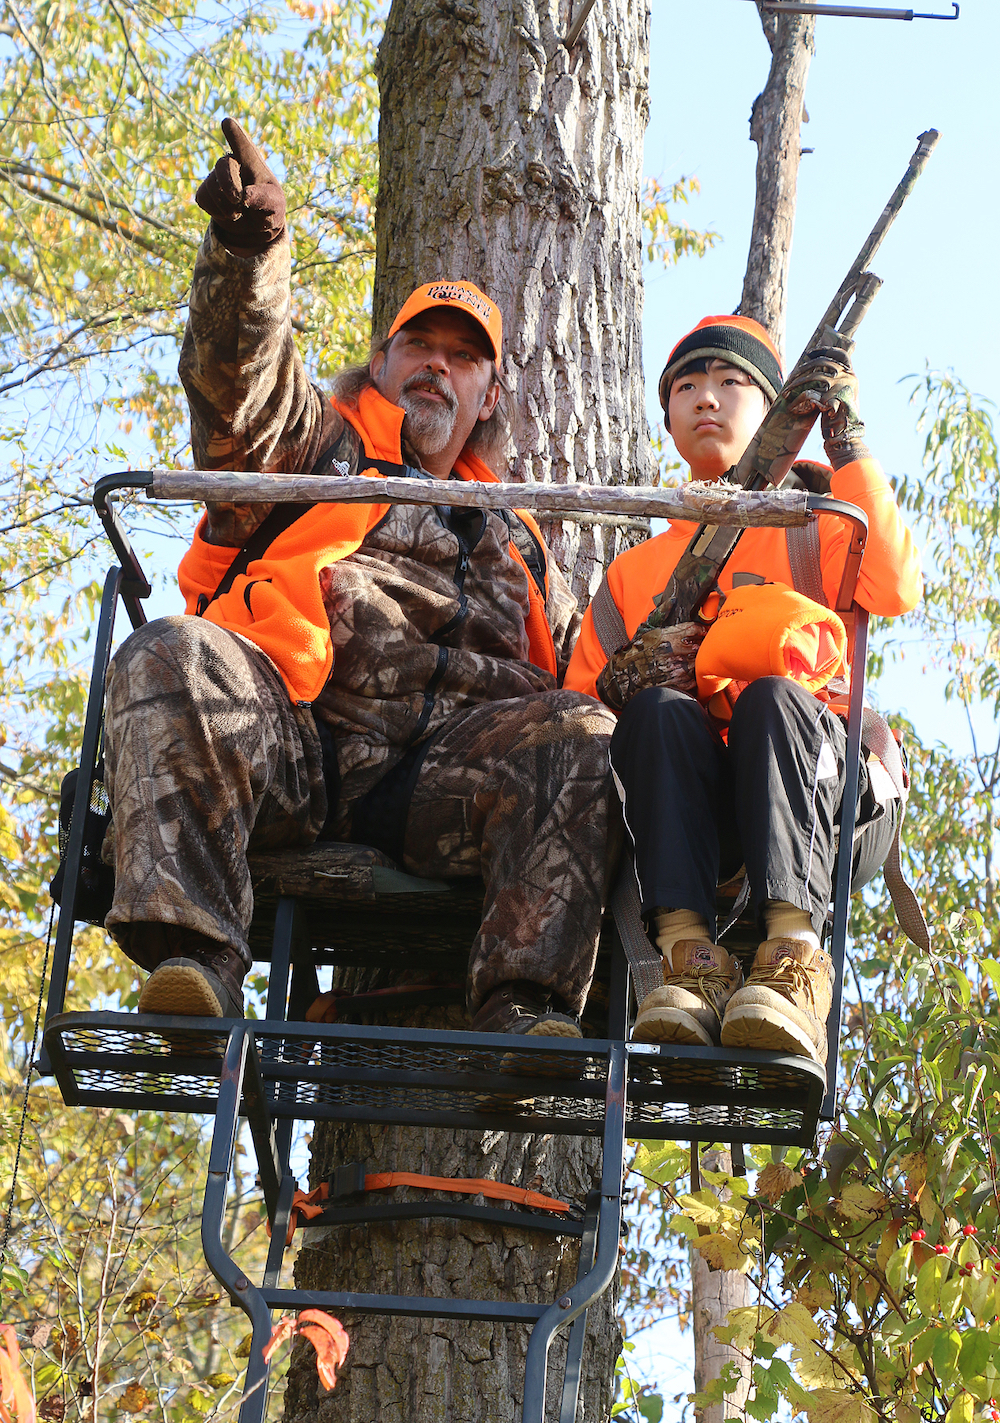 Two deer hunters wearing blaze orange hats and jackets are sitting in a tree-stand.